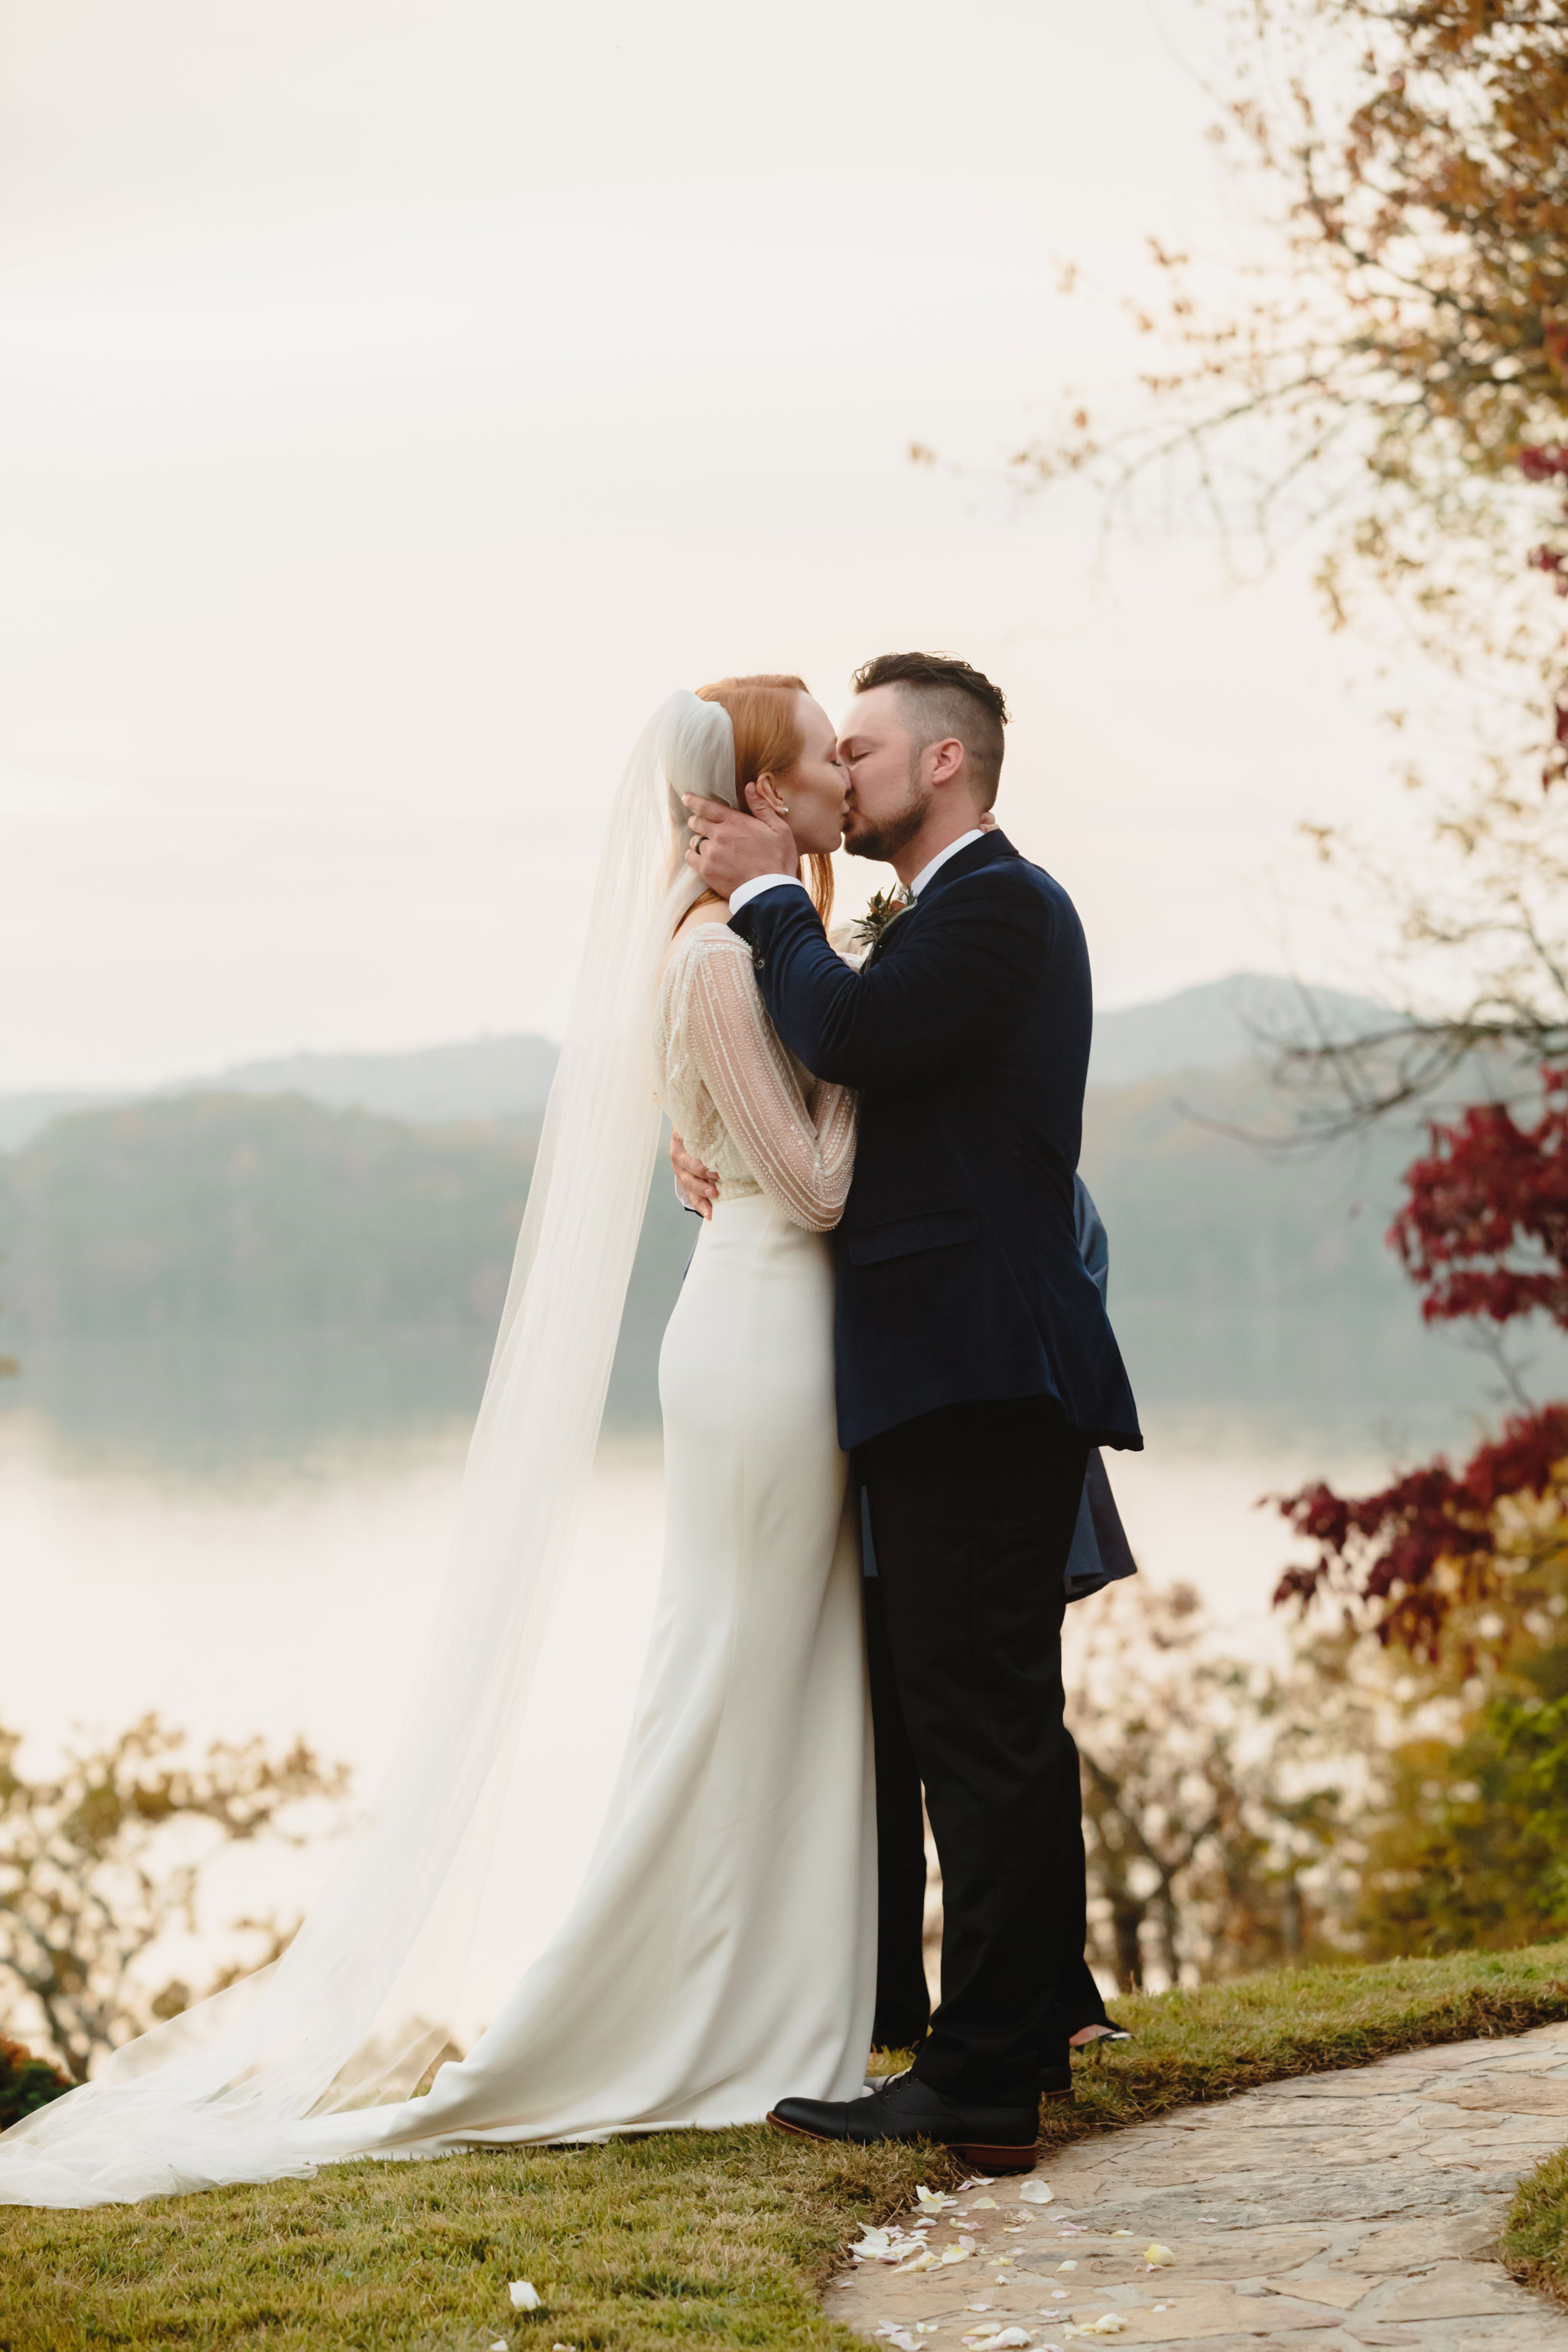 Outdoor Ceremony | Autumn Tennessee Wedding in Knoxville